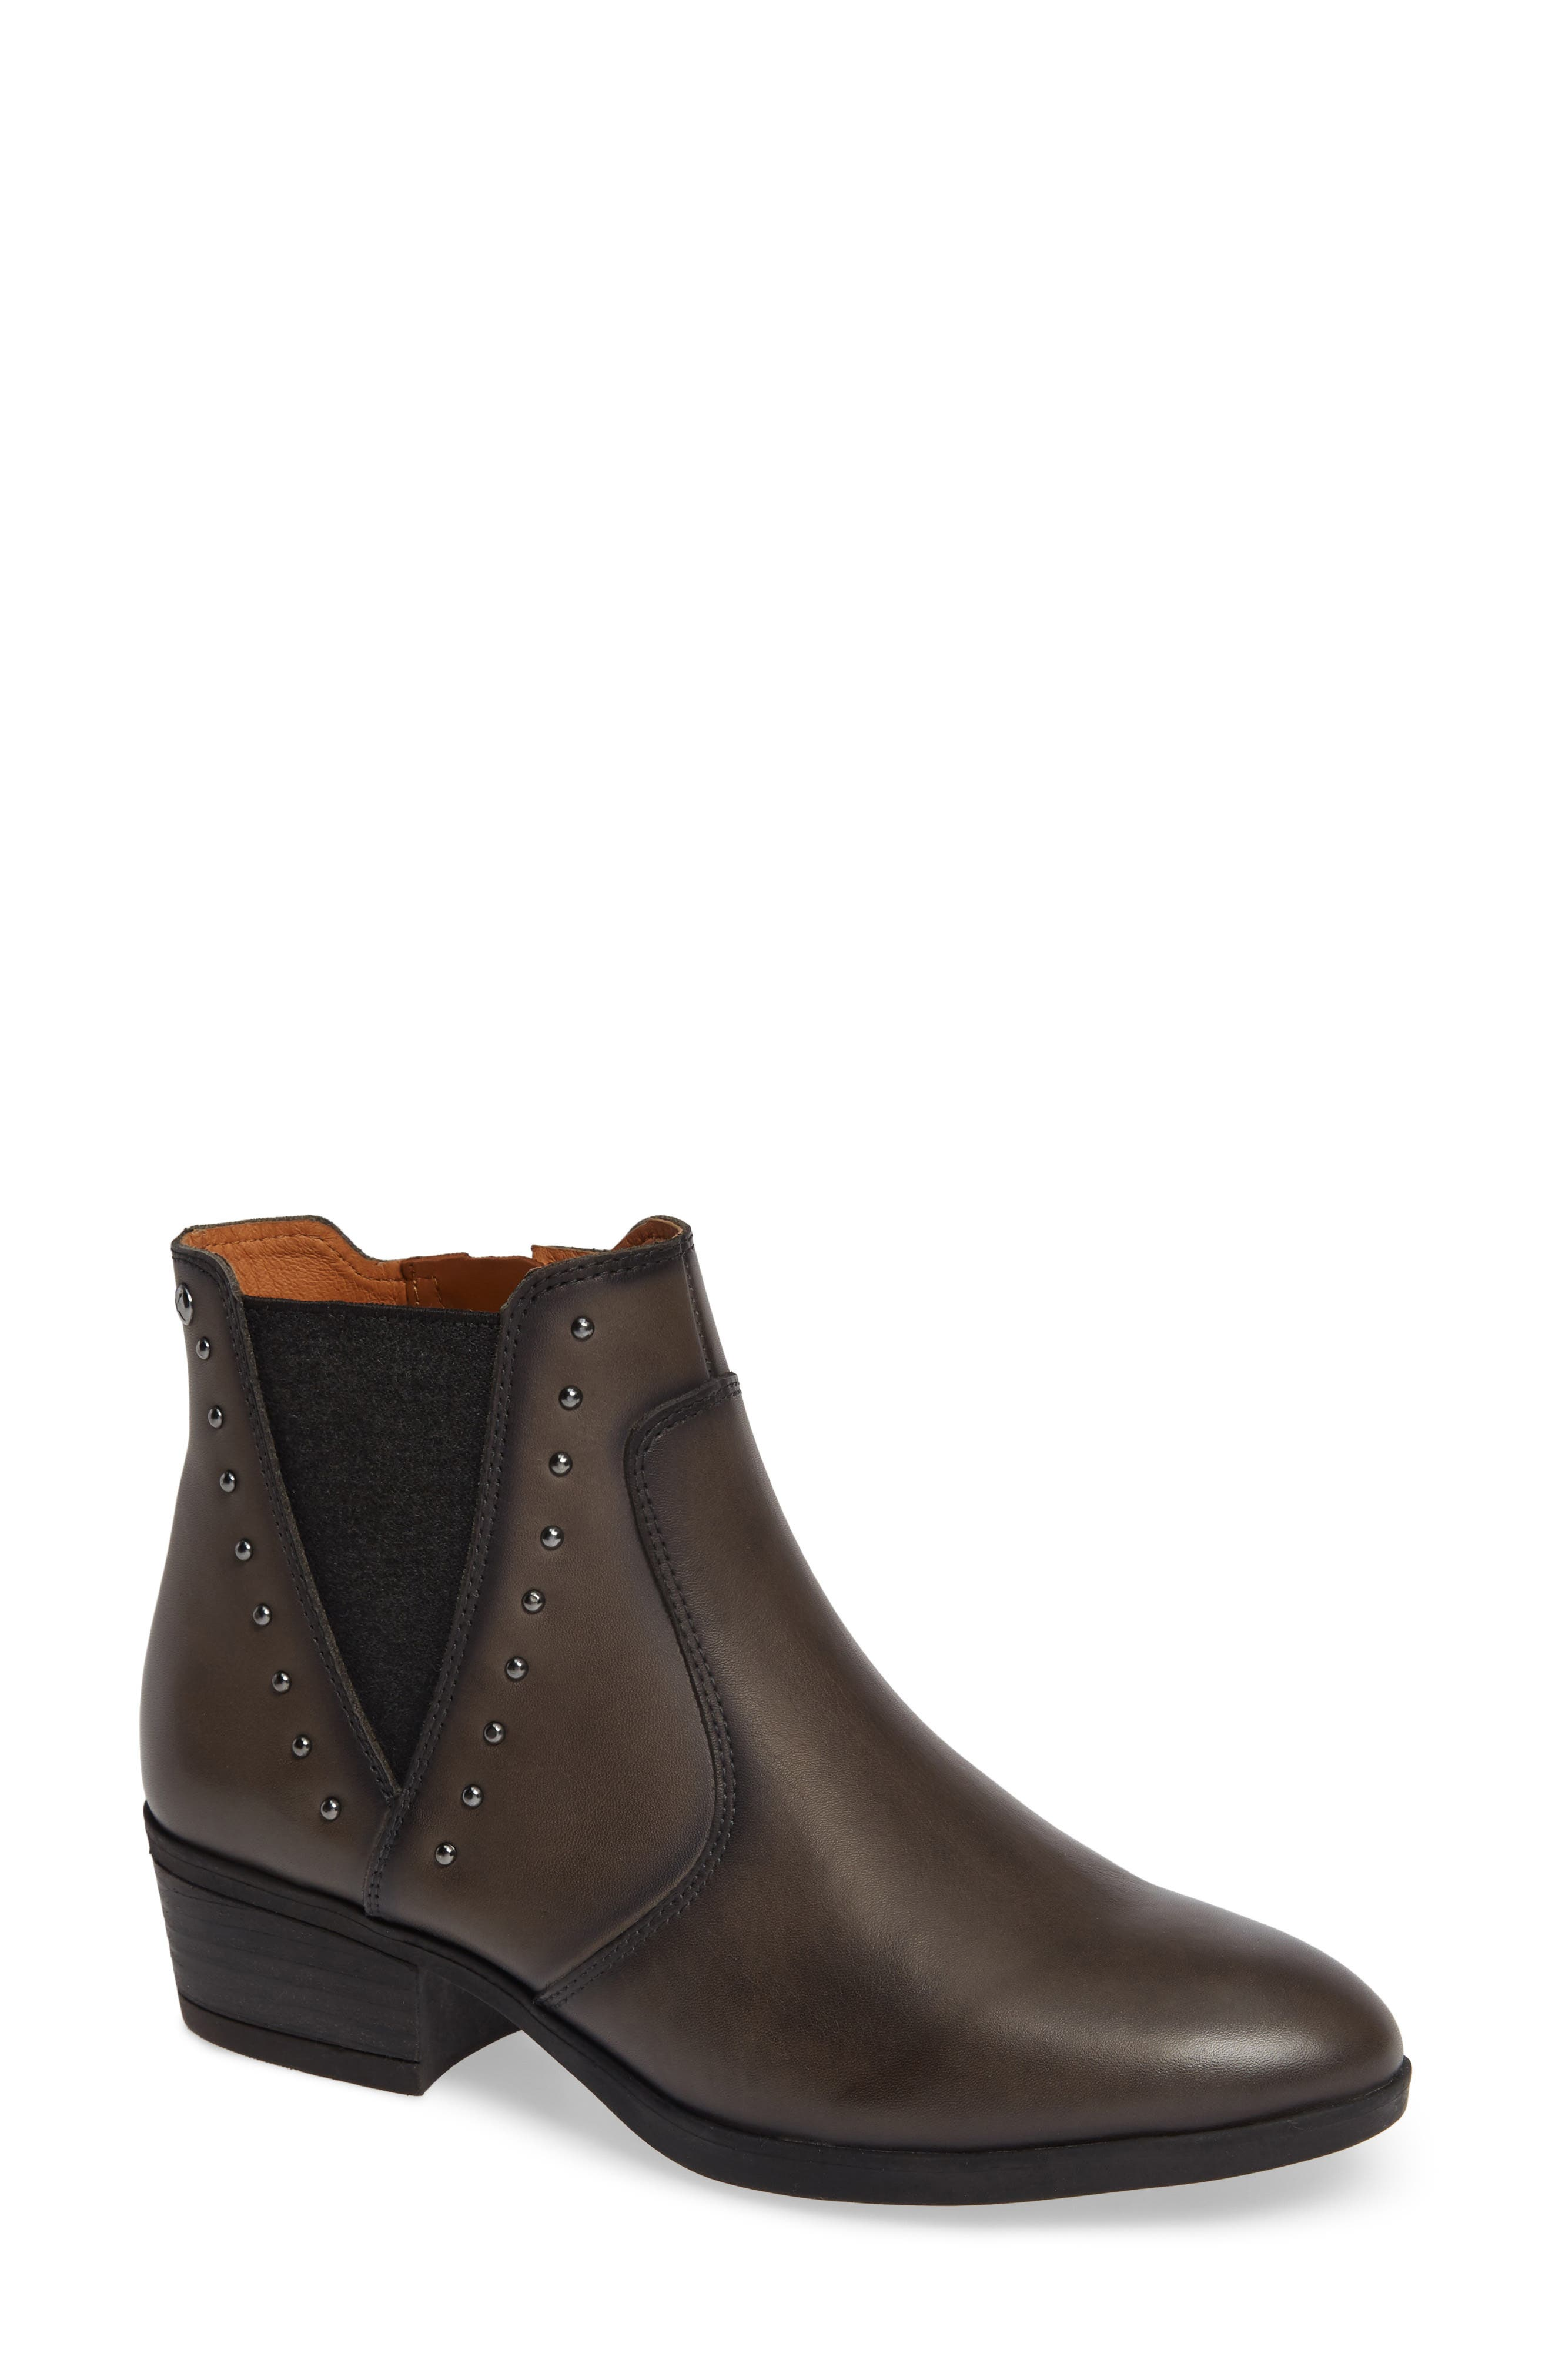 Daroca Studded Bootie,                             Main thumbnail 1, color,                             LEAD LEATHER